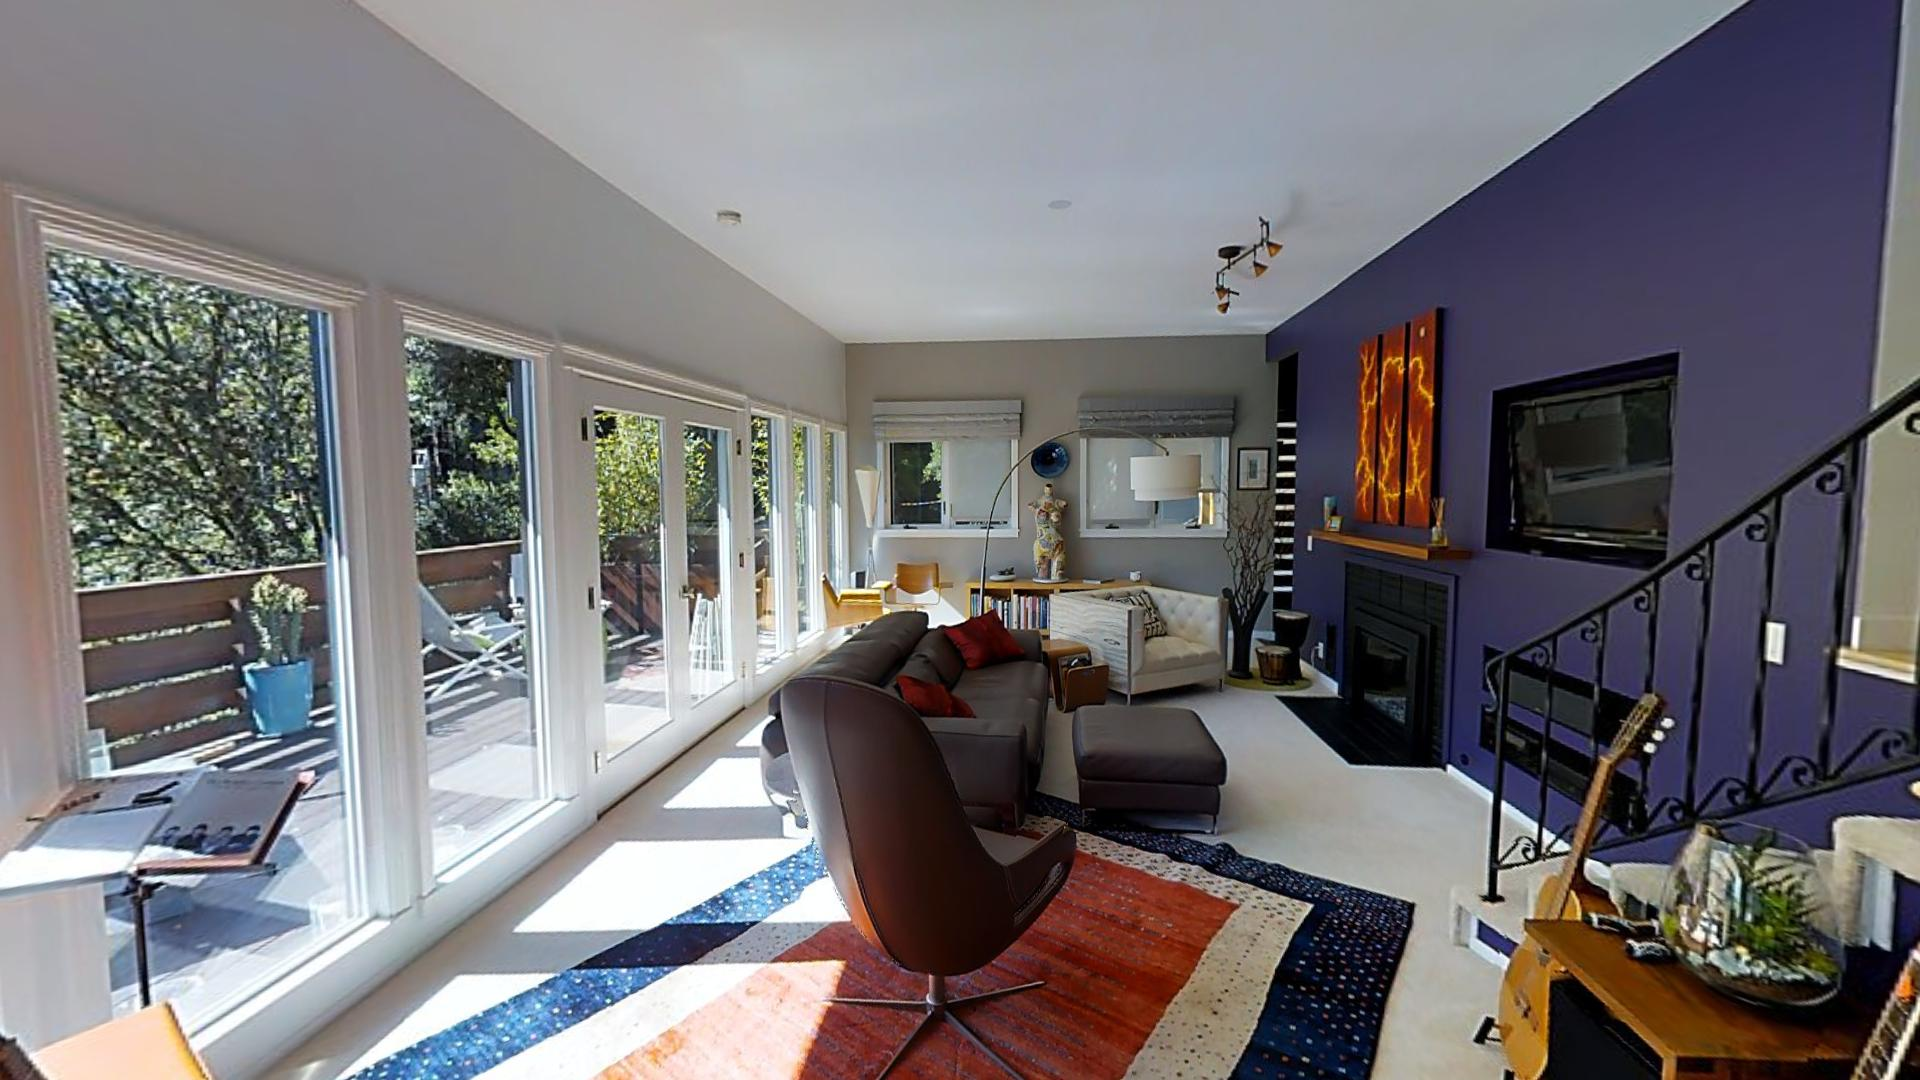 Sample Matterport 3D Showcase Image - Living Room with Purple Accent Wall